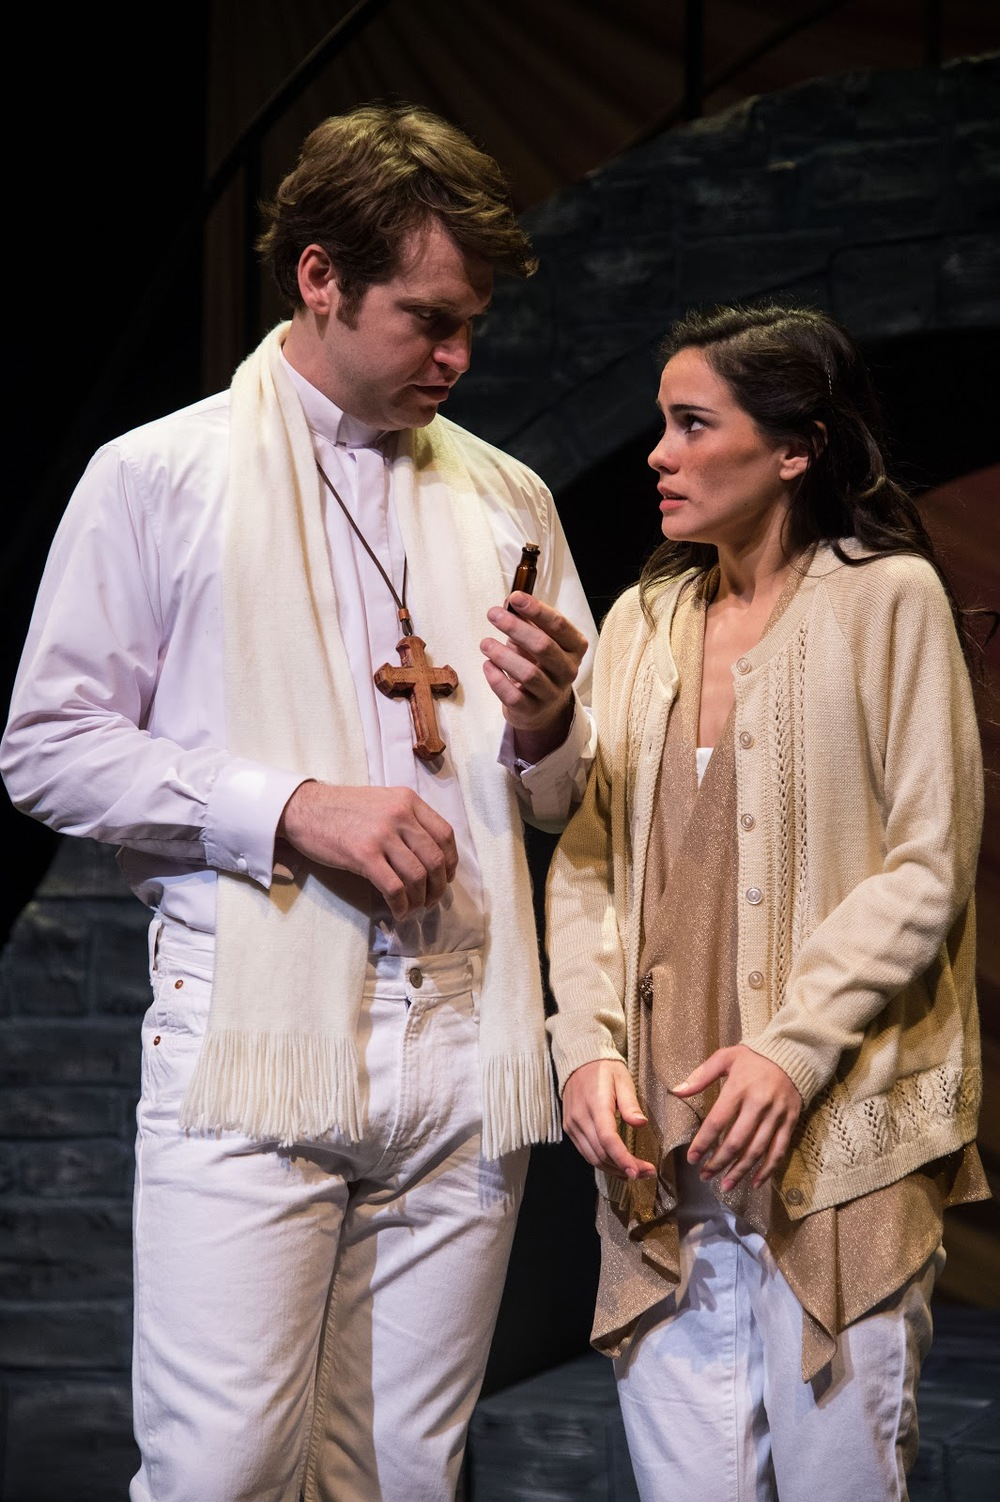 Joshua James Innerst (left) as Friar Lawrence and Melisa Pereyra as Juliet in the Utah Shakespeare Festival's Romeo and Juliet.